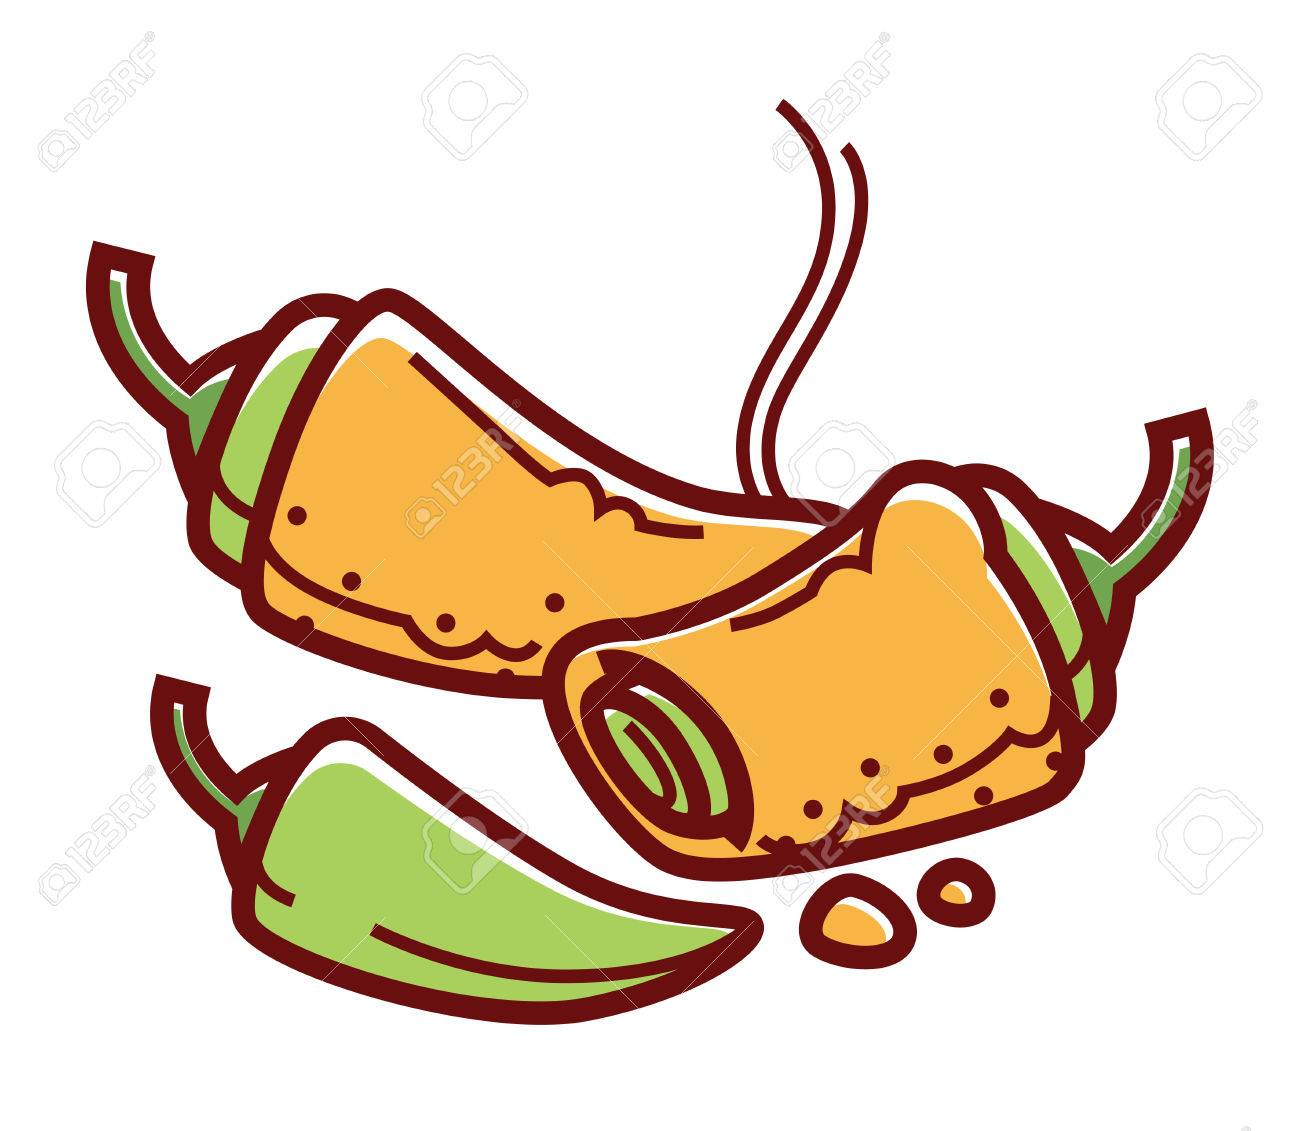 Hot Stuffed Chiles Rellenos Isolated Cartoon Illustration Royalty Free Cliparts Vectors And Stock Illustration Image 85362268